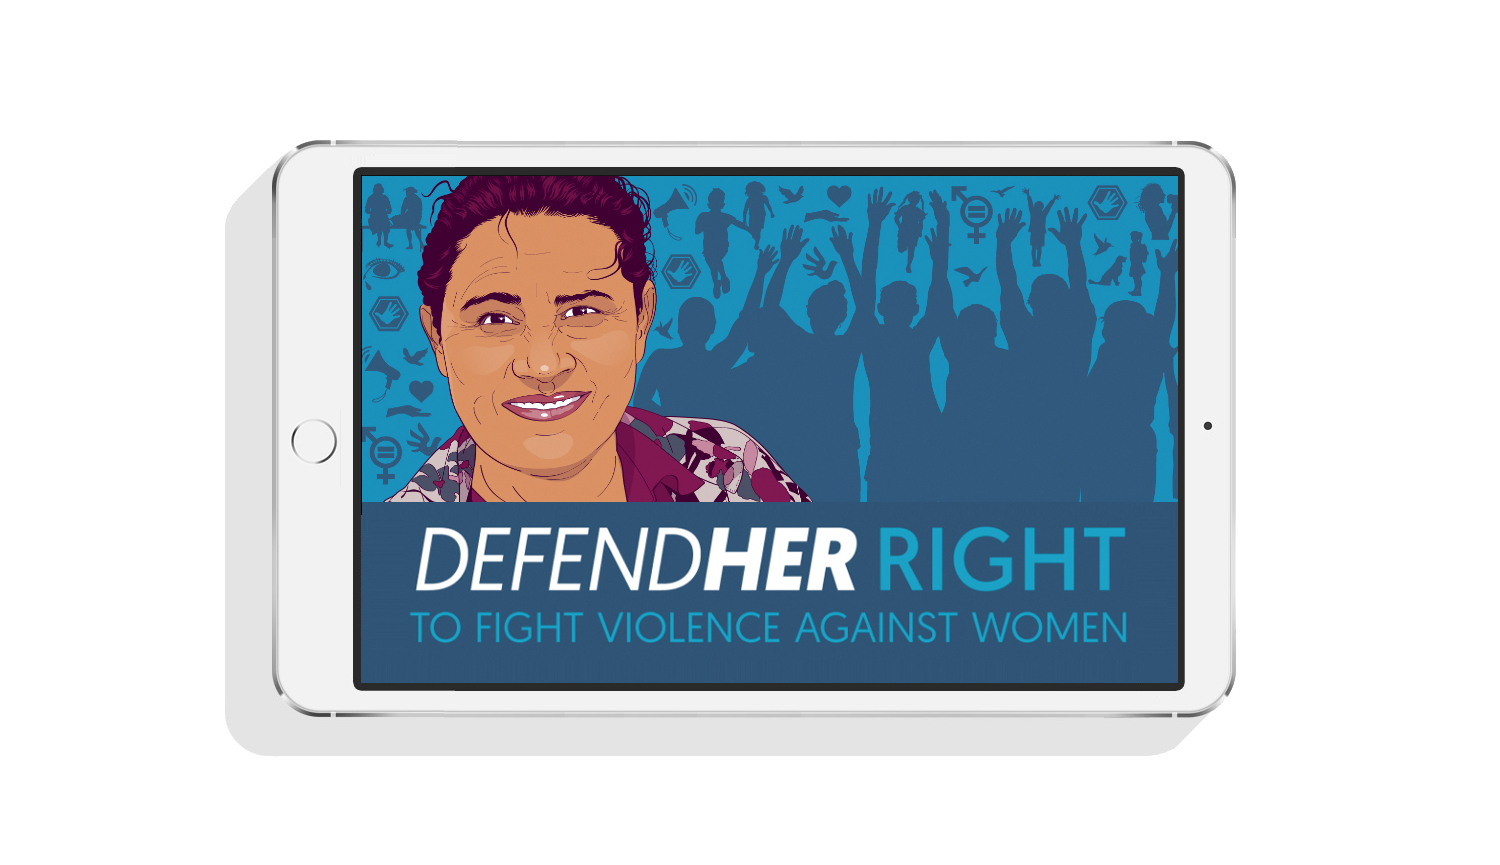 Women Human Rights Defender Campaign